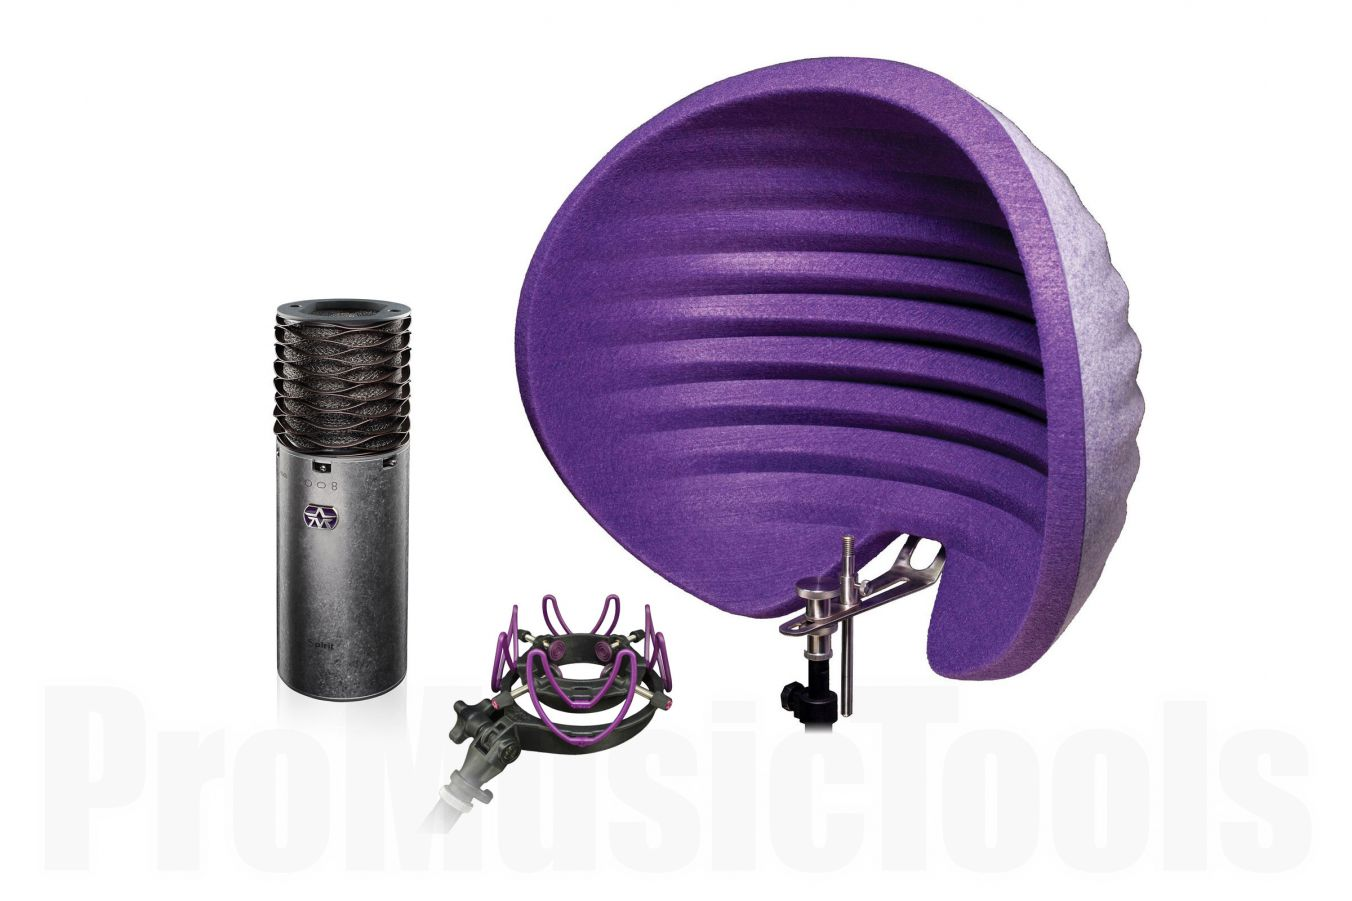 Aston Microphones Spirit, Halo Reflection Filter & USM Shock Mount - Bundle offer